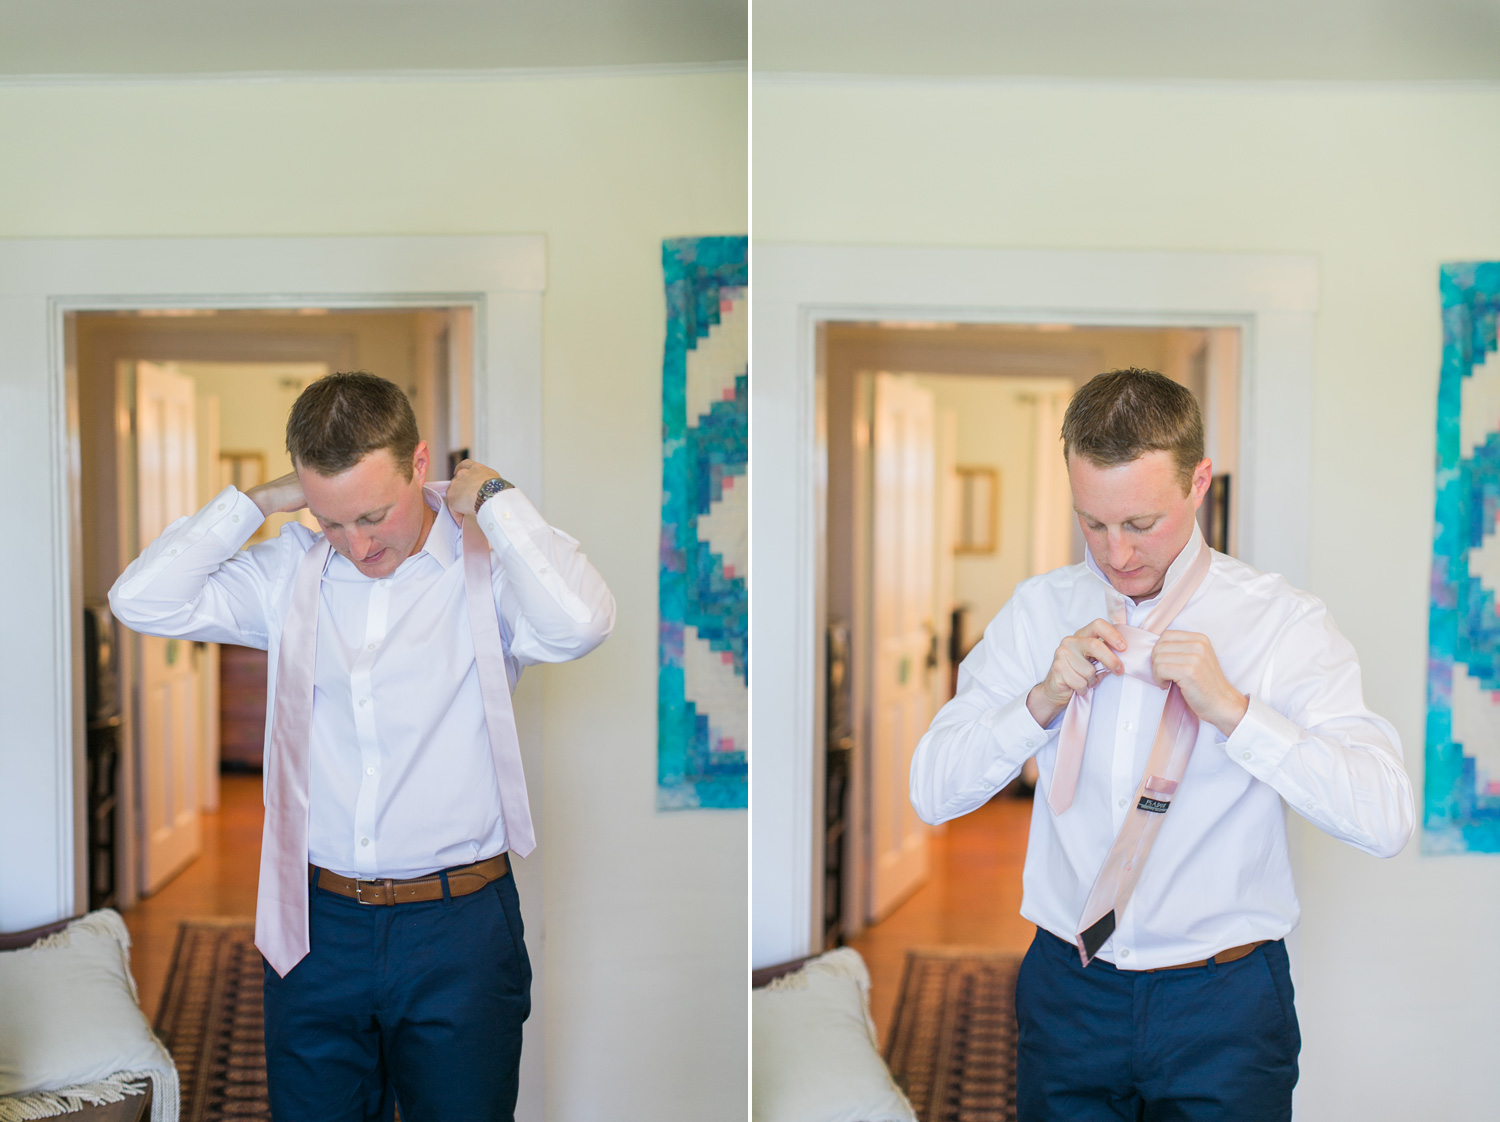 013-groom-getting-ready.jpg